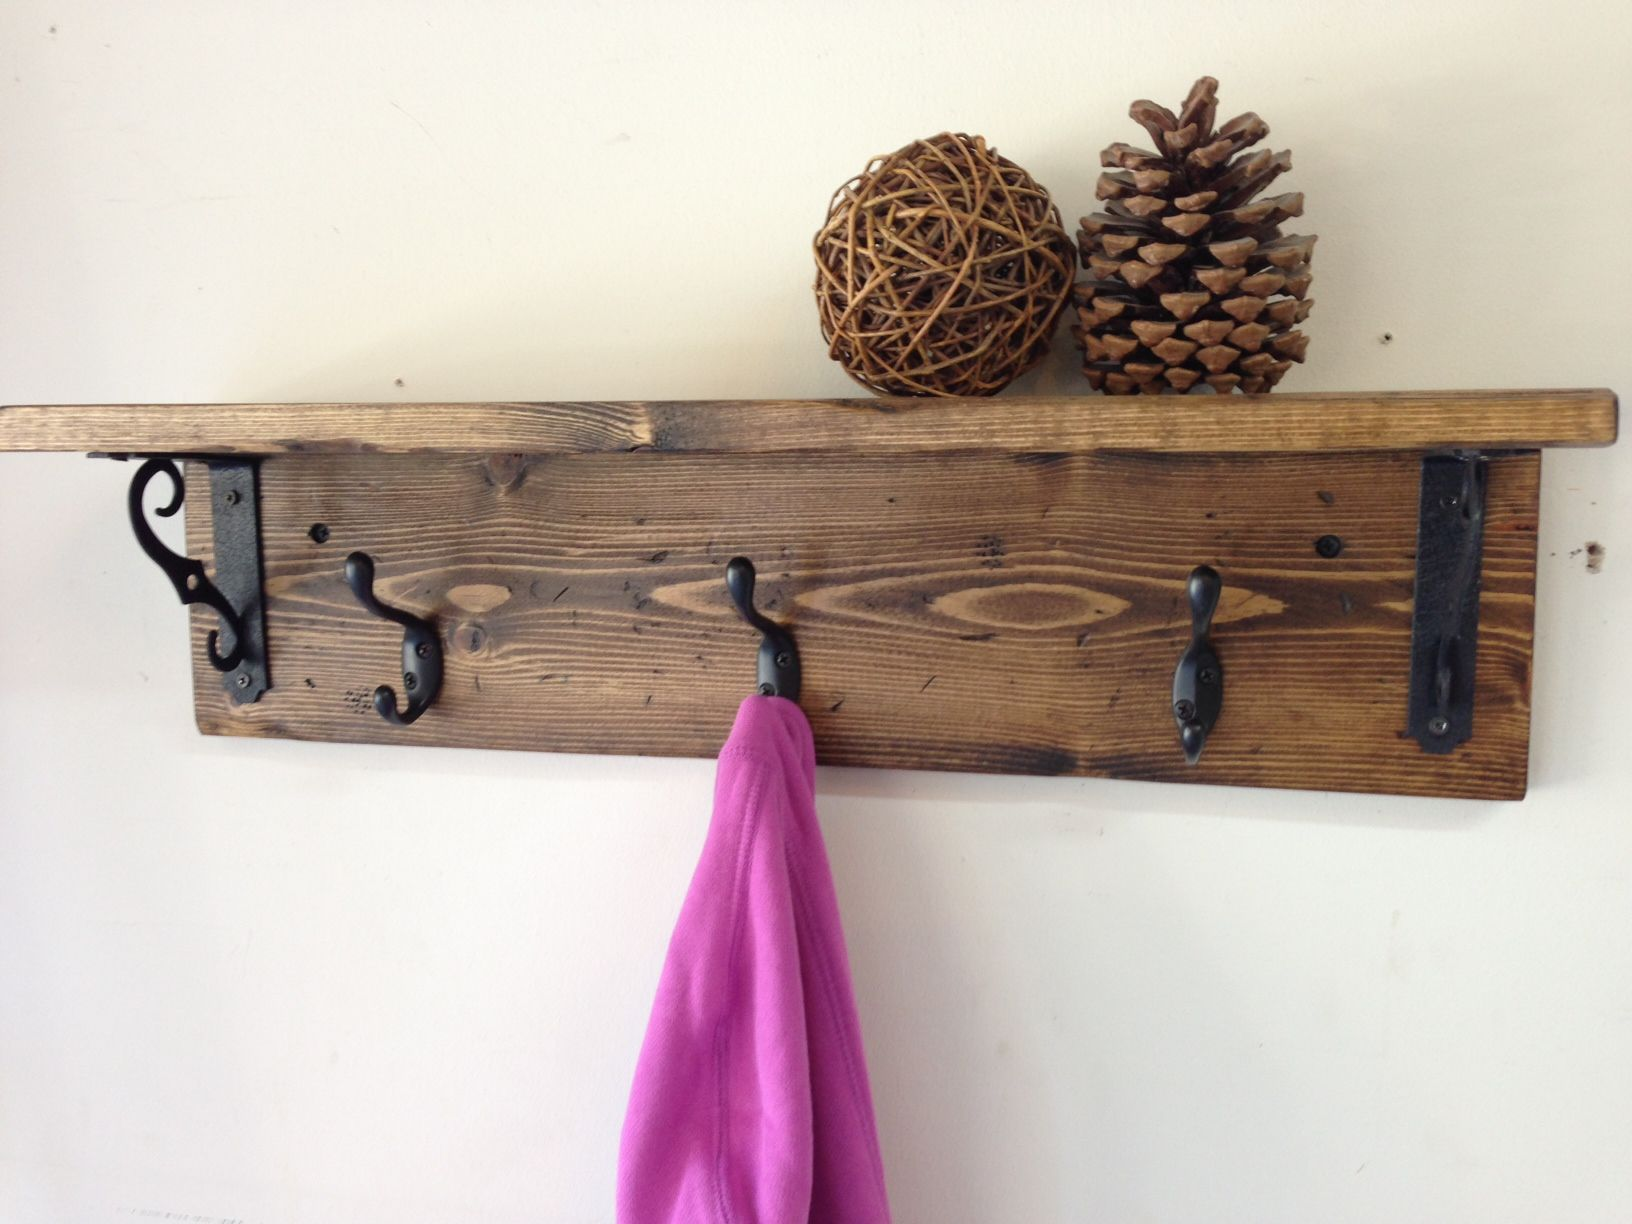 Handmade wall mount rustic wood coat rack with shelf a with railroad spike hooks rustic wood wall coat hook rack with shelf and 3 hooks vintage distressed iron handmade amipublicfo Gallery